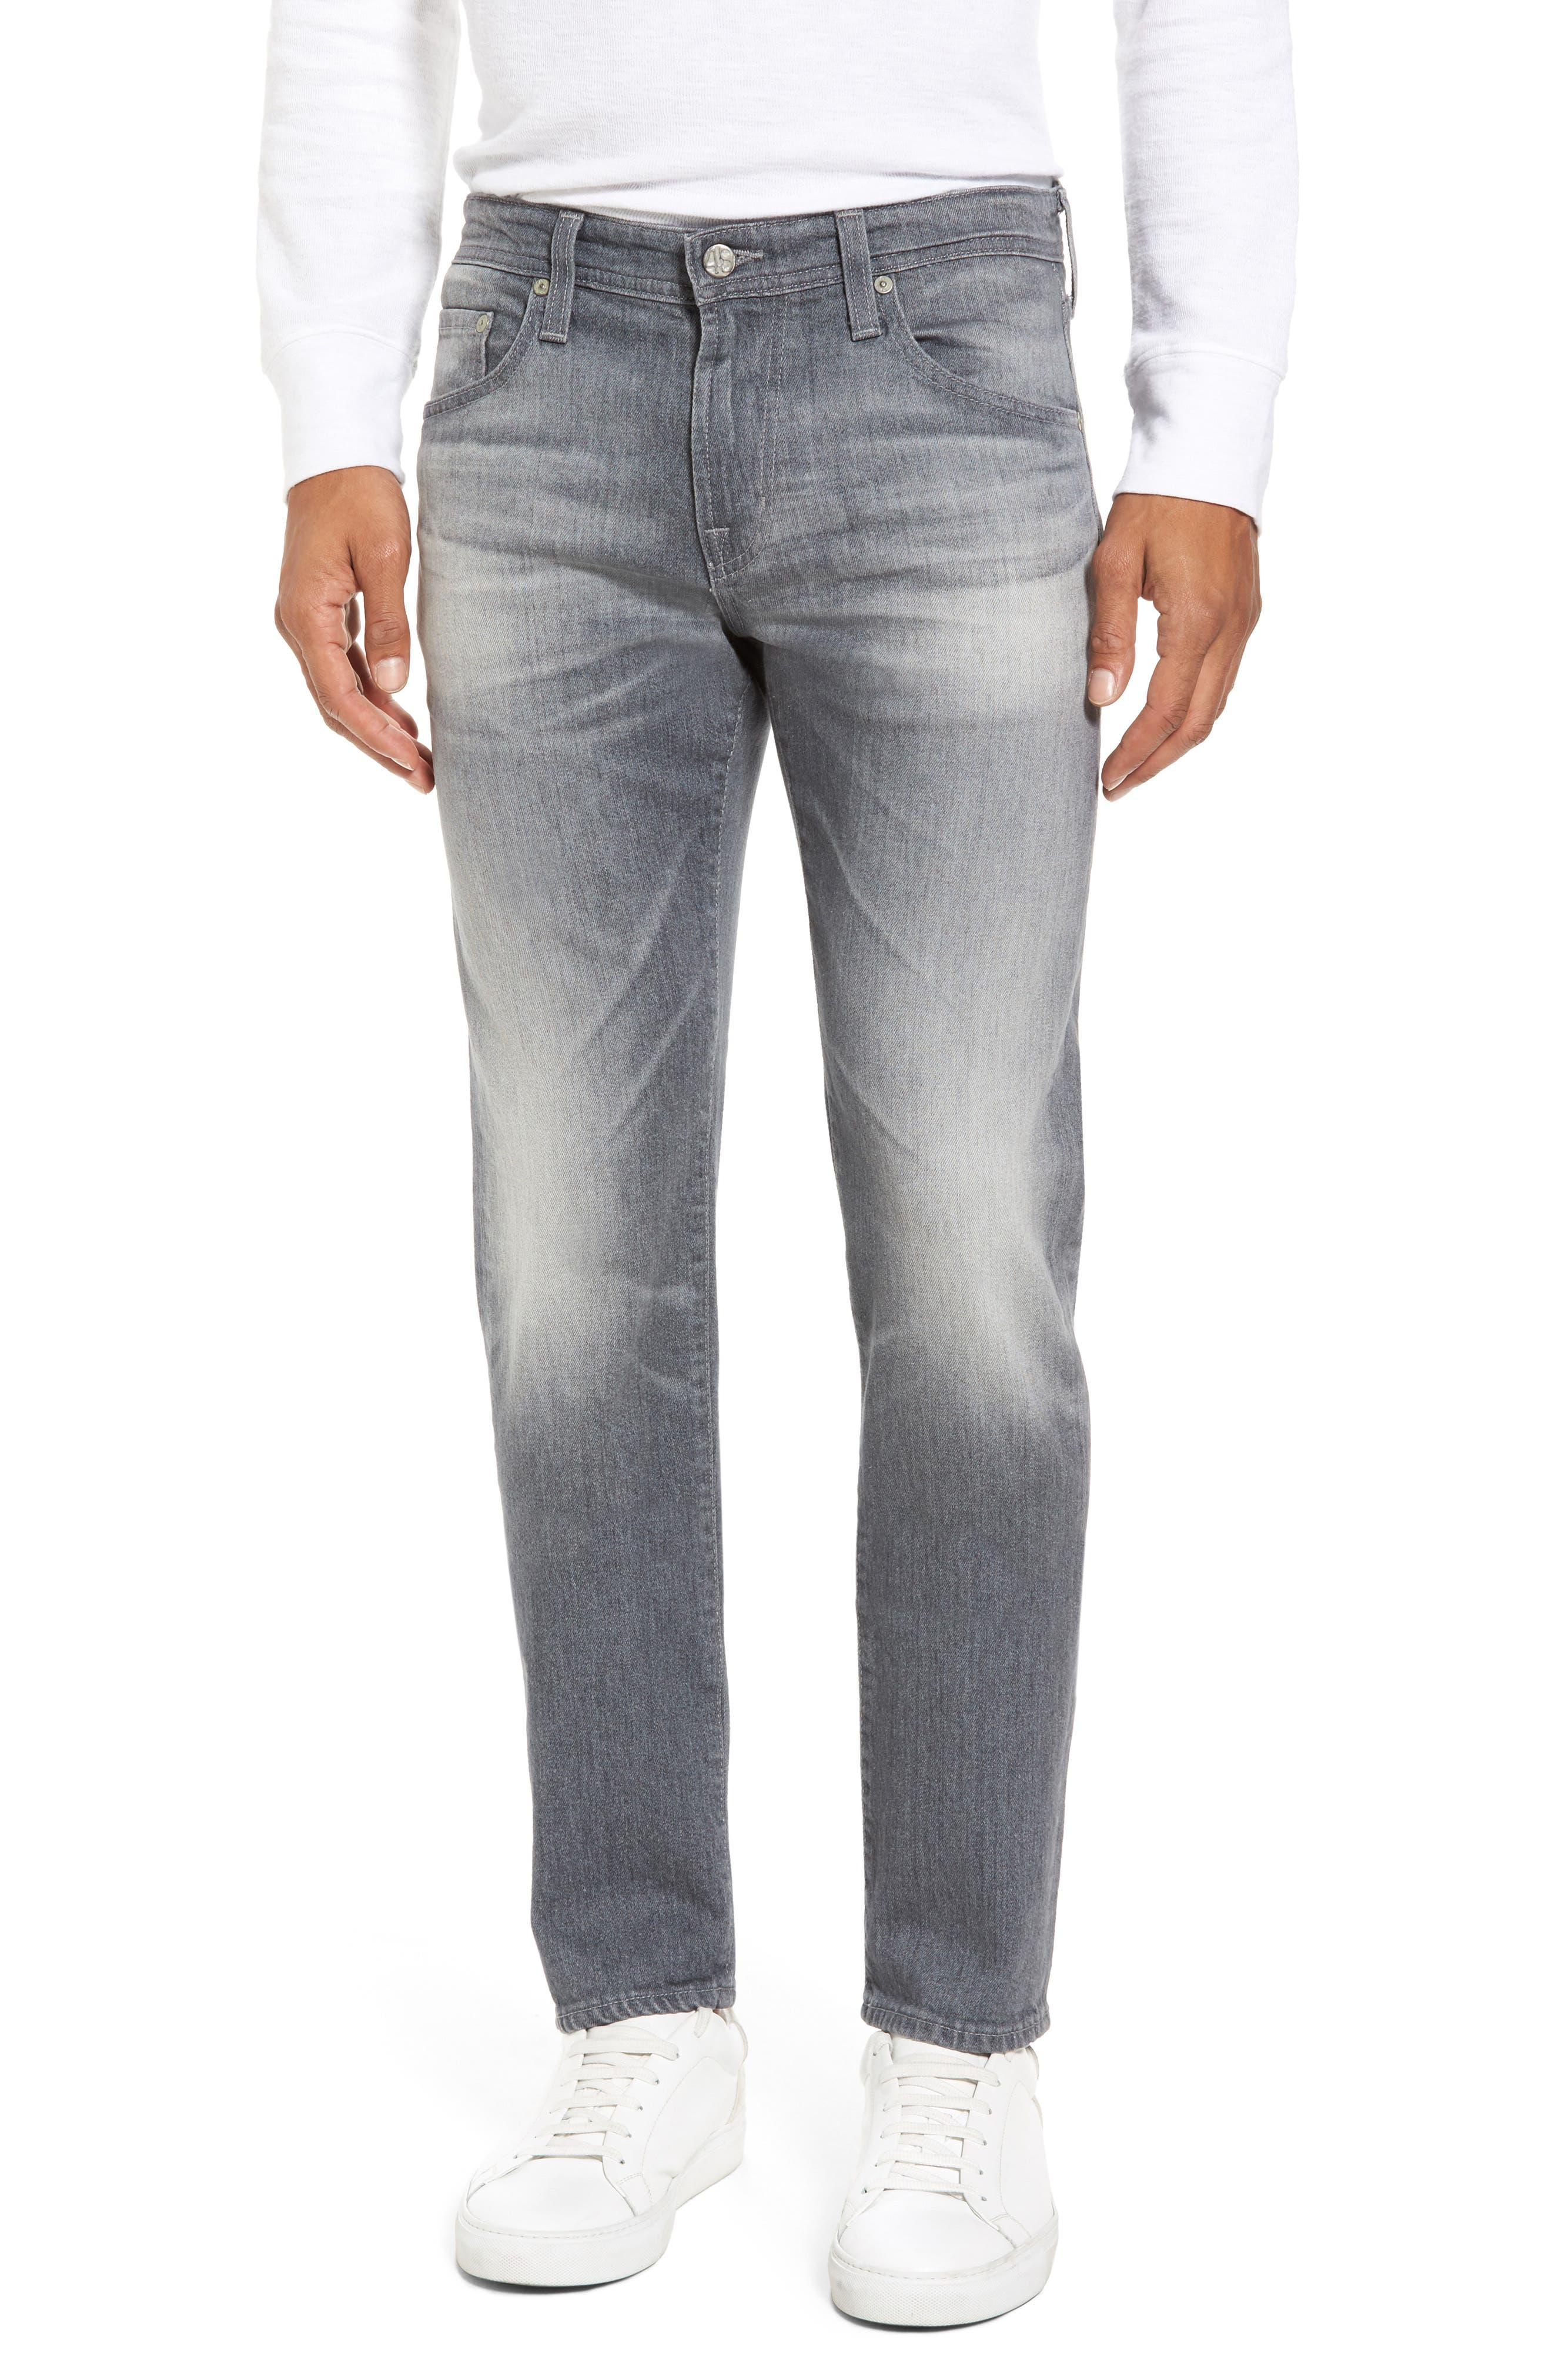 Tellis Modern Slim Fit Jeans,                         Main,                         color, 13 Years Fortress